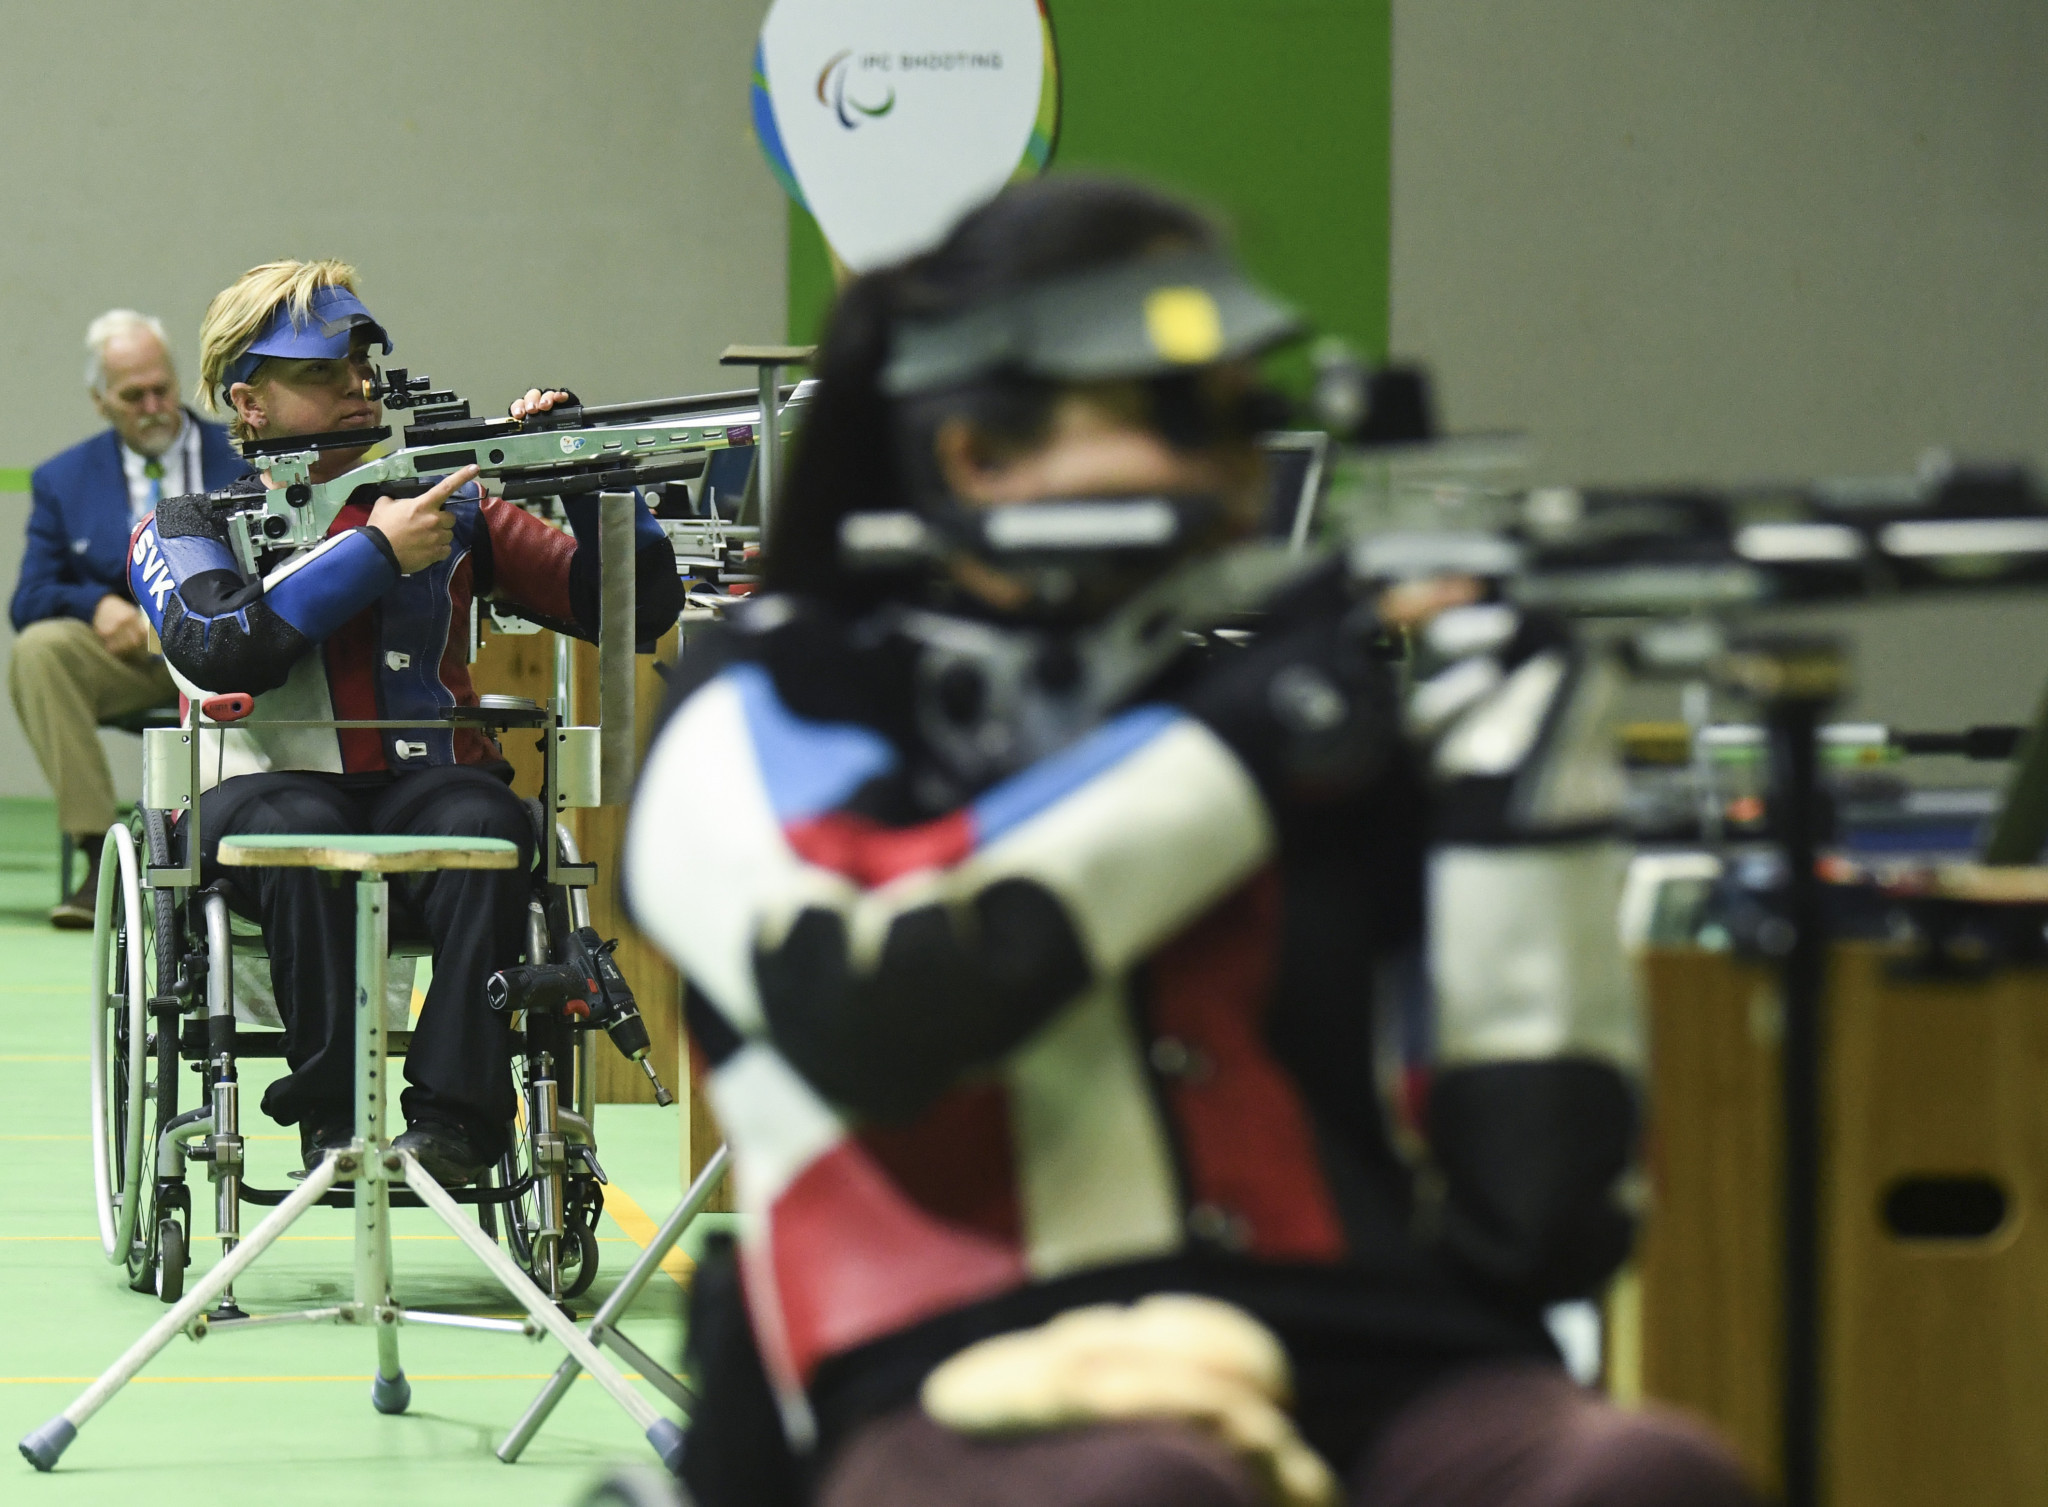 Al Ain to host World Shooting Para Sport World Cup opener for third straight year